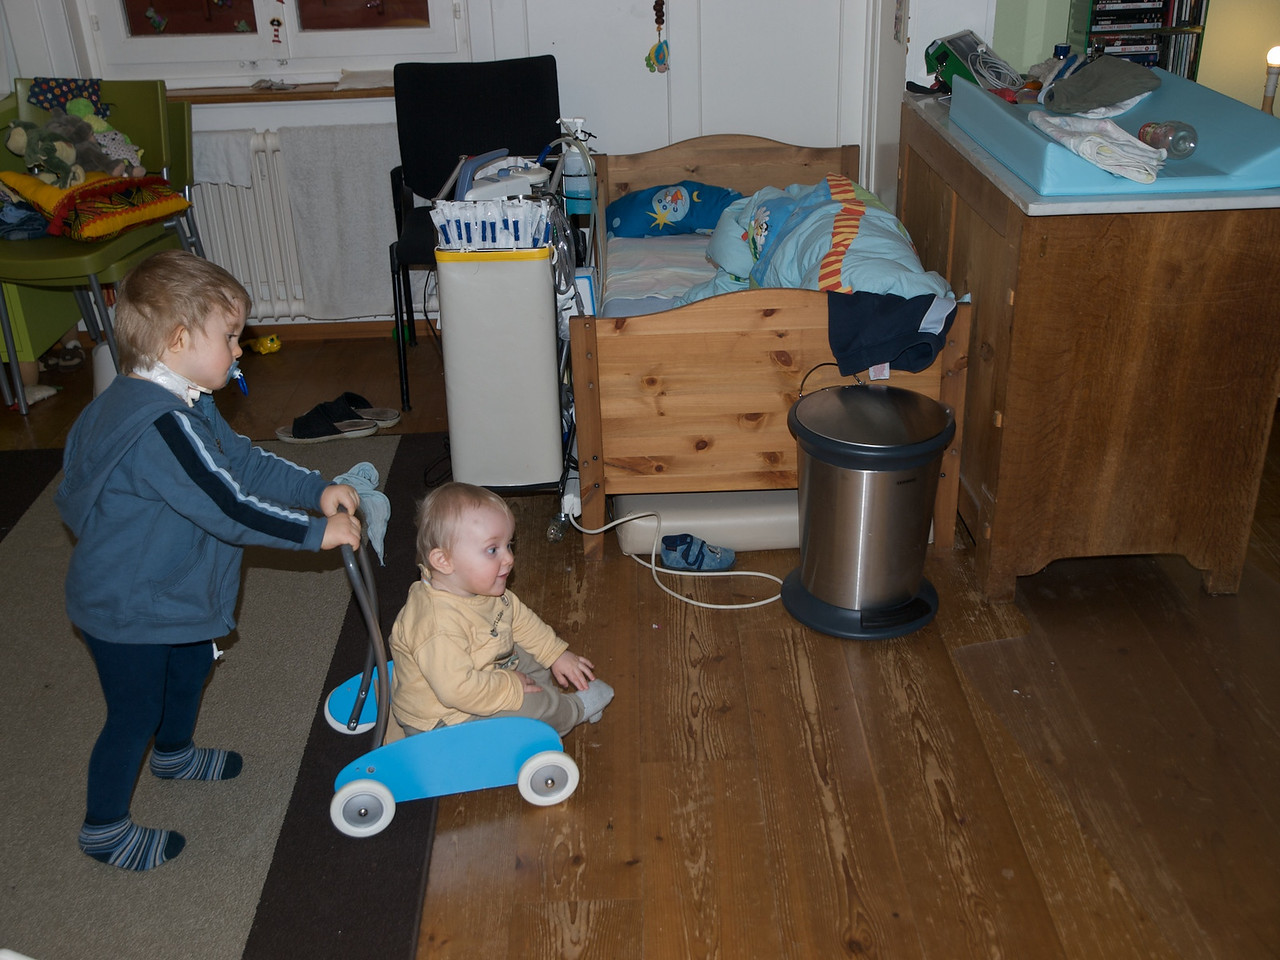 Sunday 8th Jan 2009 - Luc has to rely on Cai to push him around while the bigger boys are in Australia